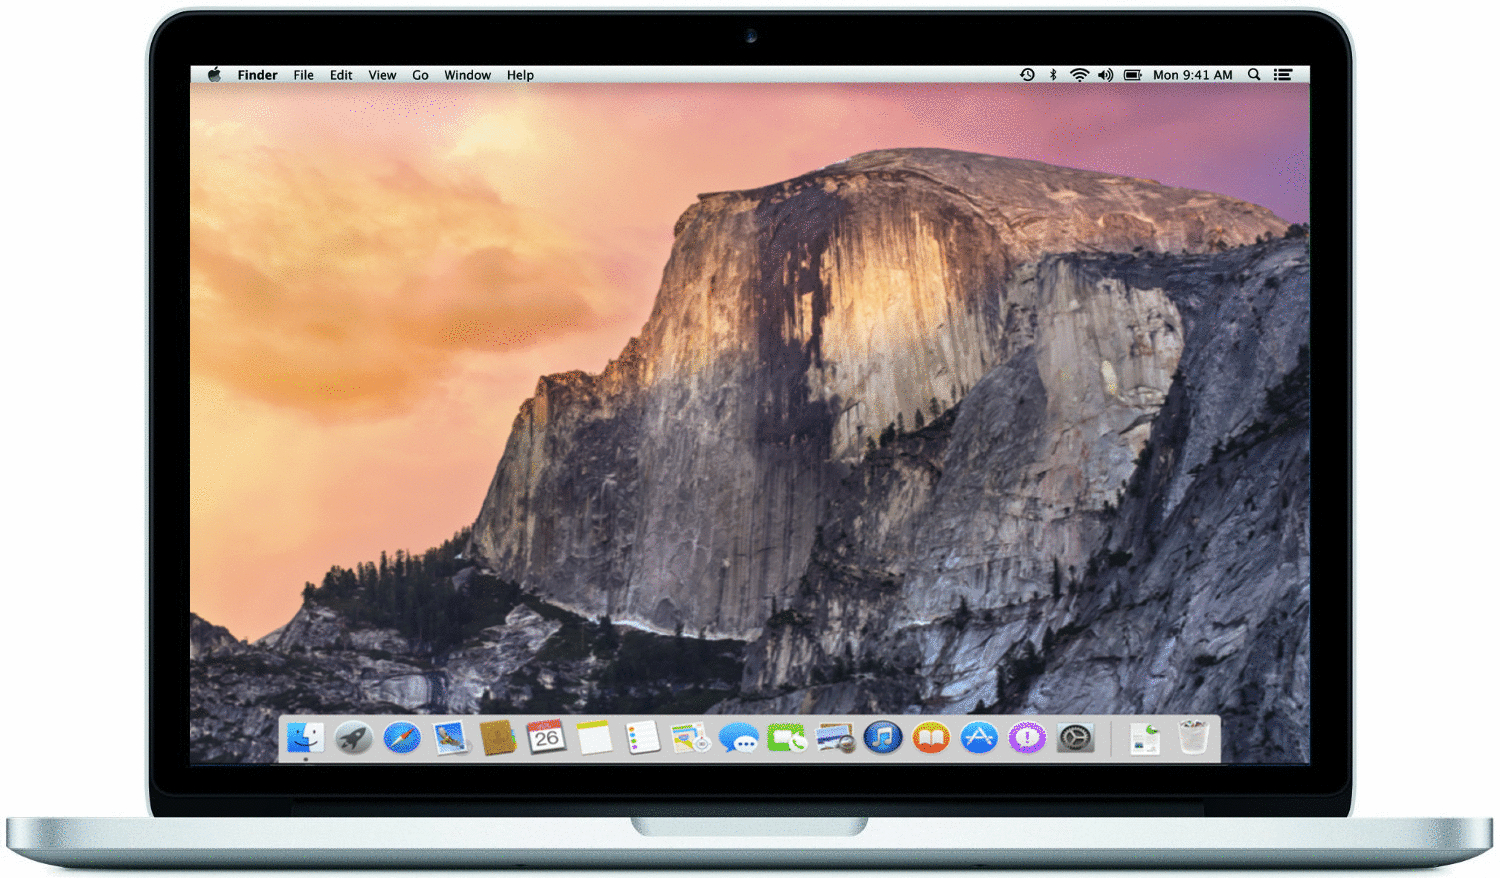 Apple MacBook Pro CTO 13.3 (Retina Display) 3.1 GHz Intel Core i7 16 GB RAM 512 GB PCIe SSD [Early 2015]